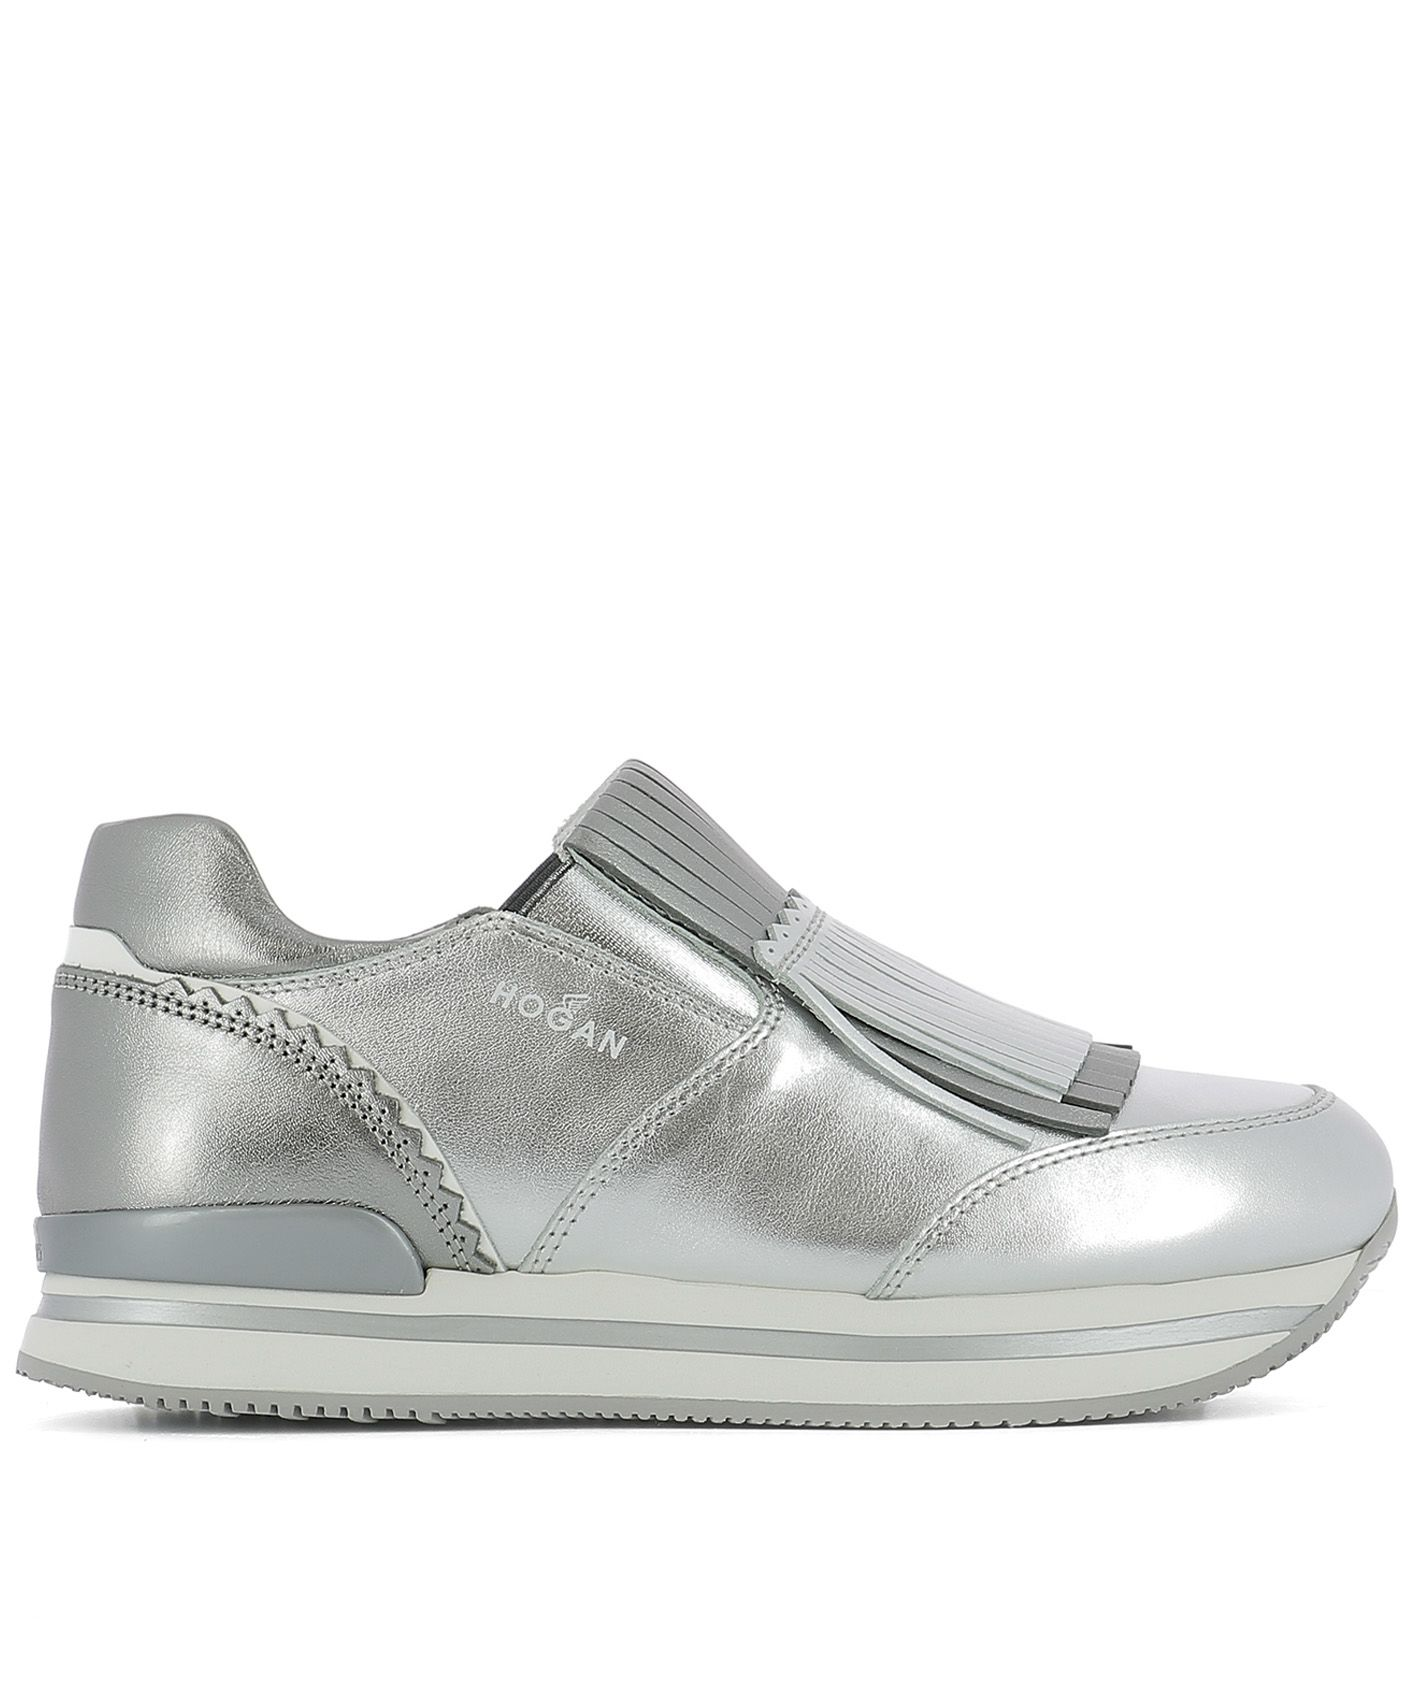 Silver Leather Slip-on